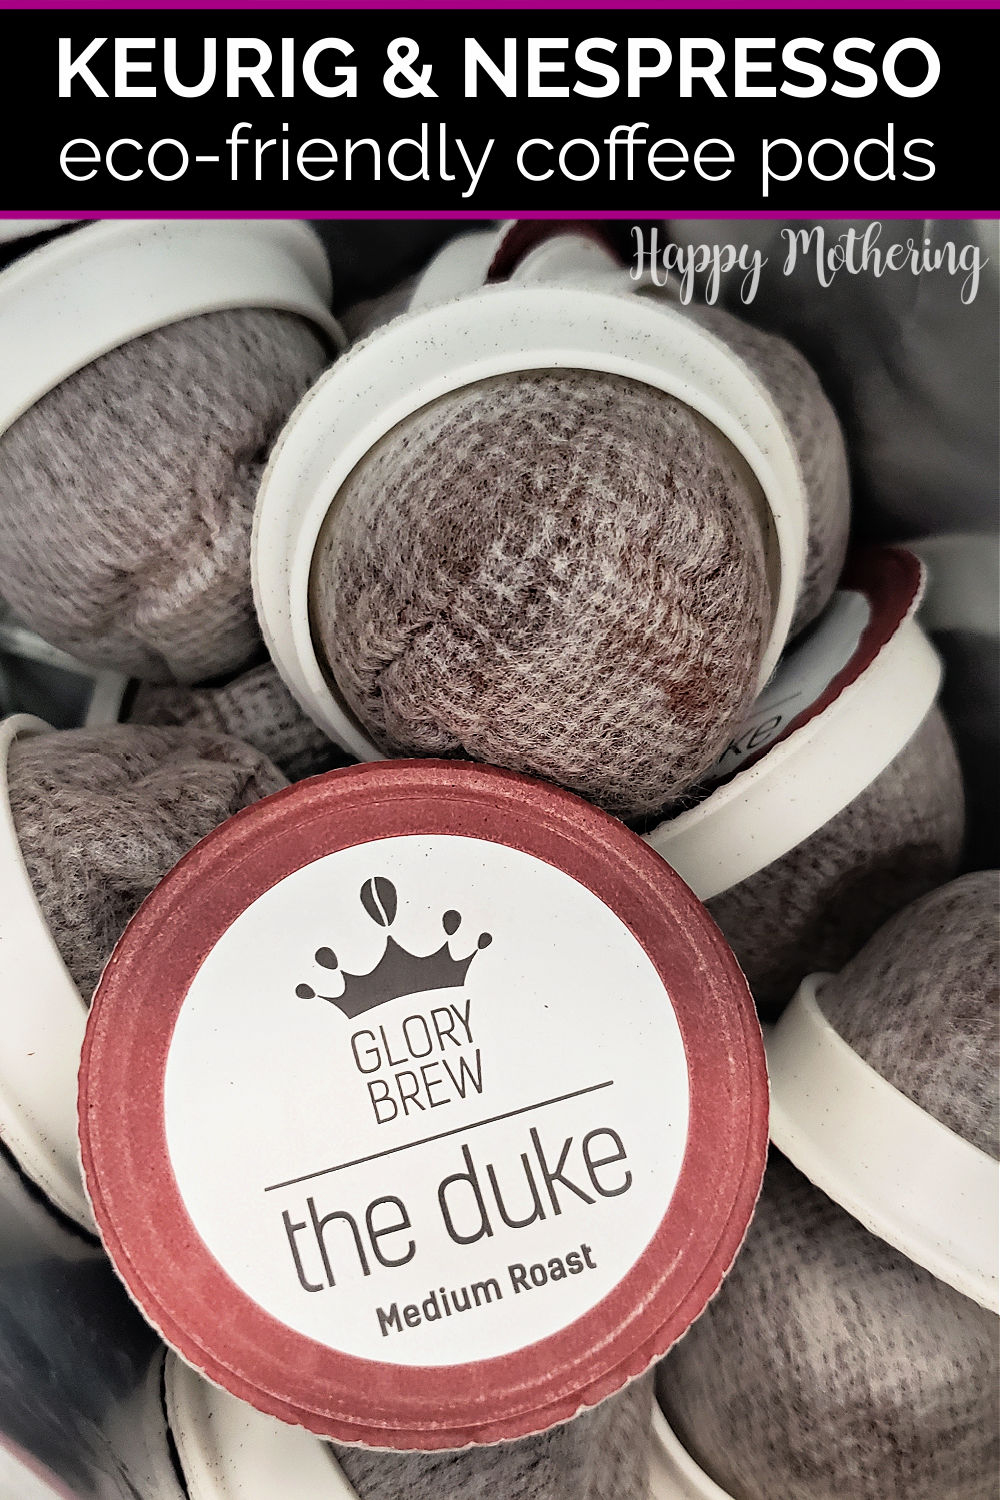 "Glory Brew ""The Duke"" compostable coffee pods in vacuum sealed bag."